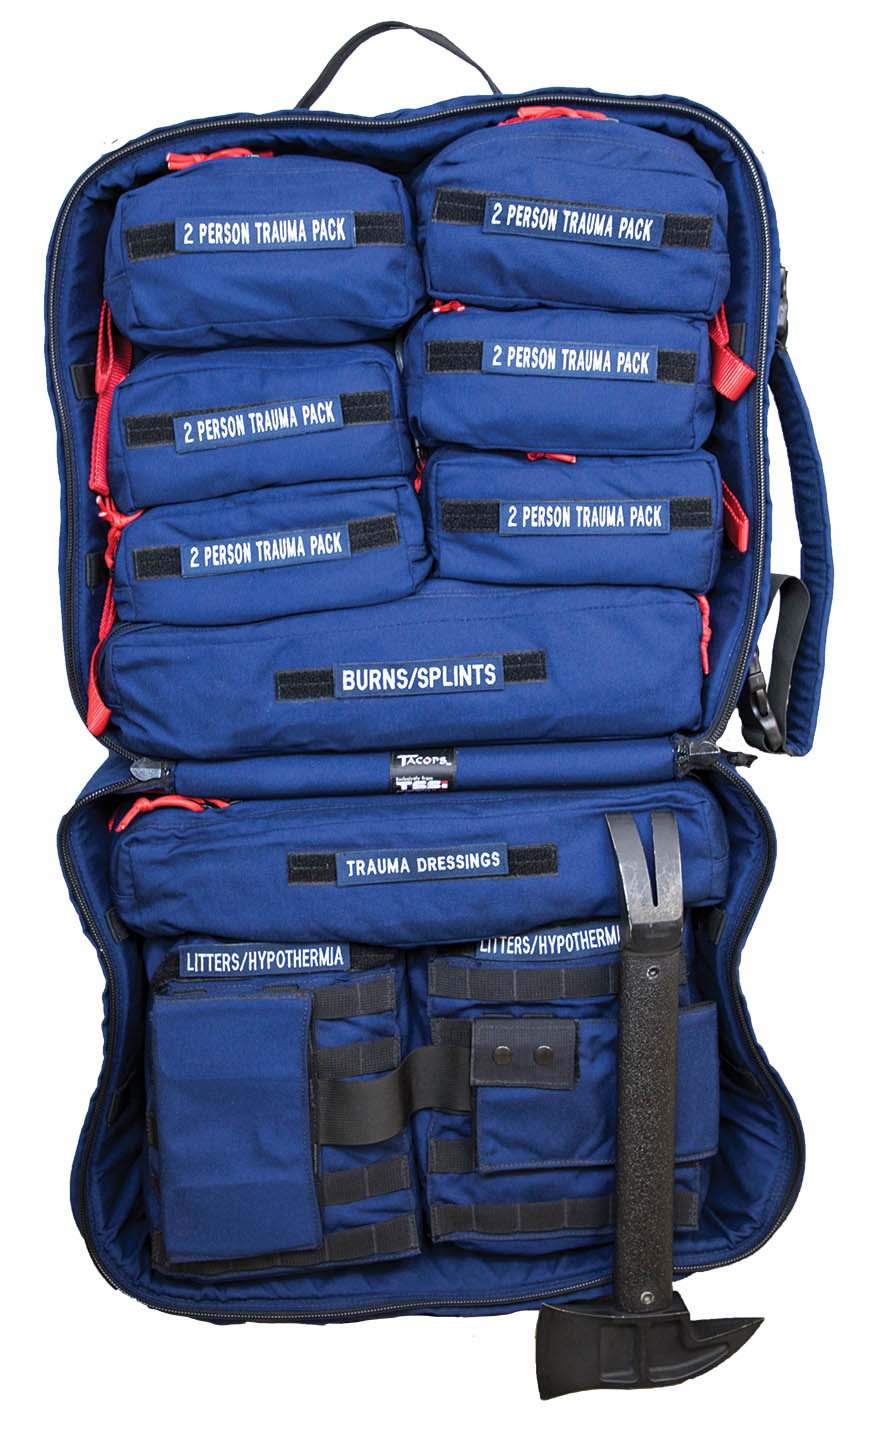 Mass Casualty Incident Response Kit